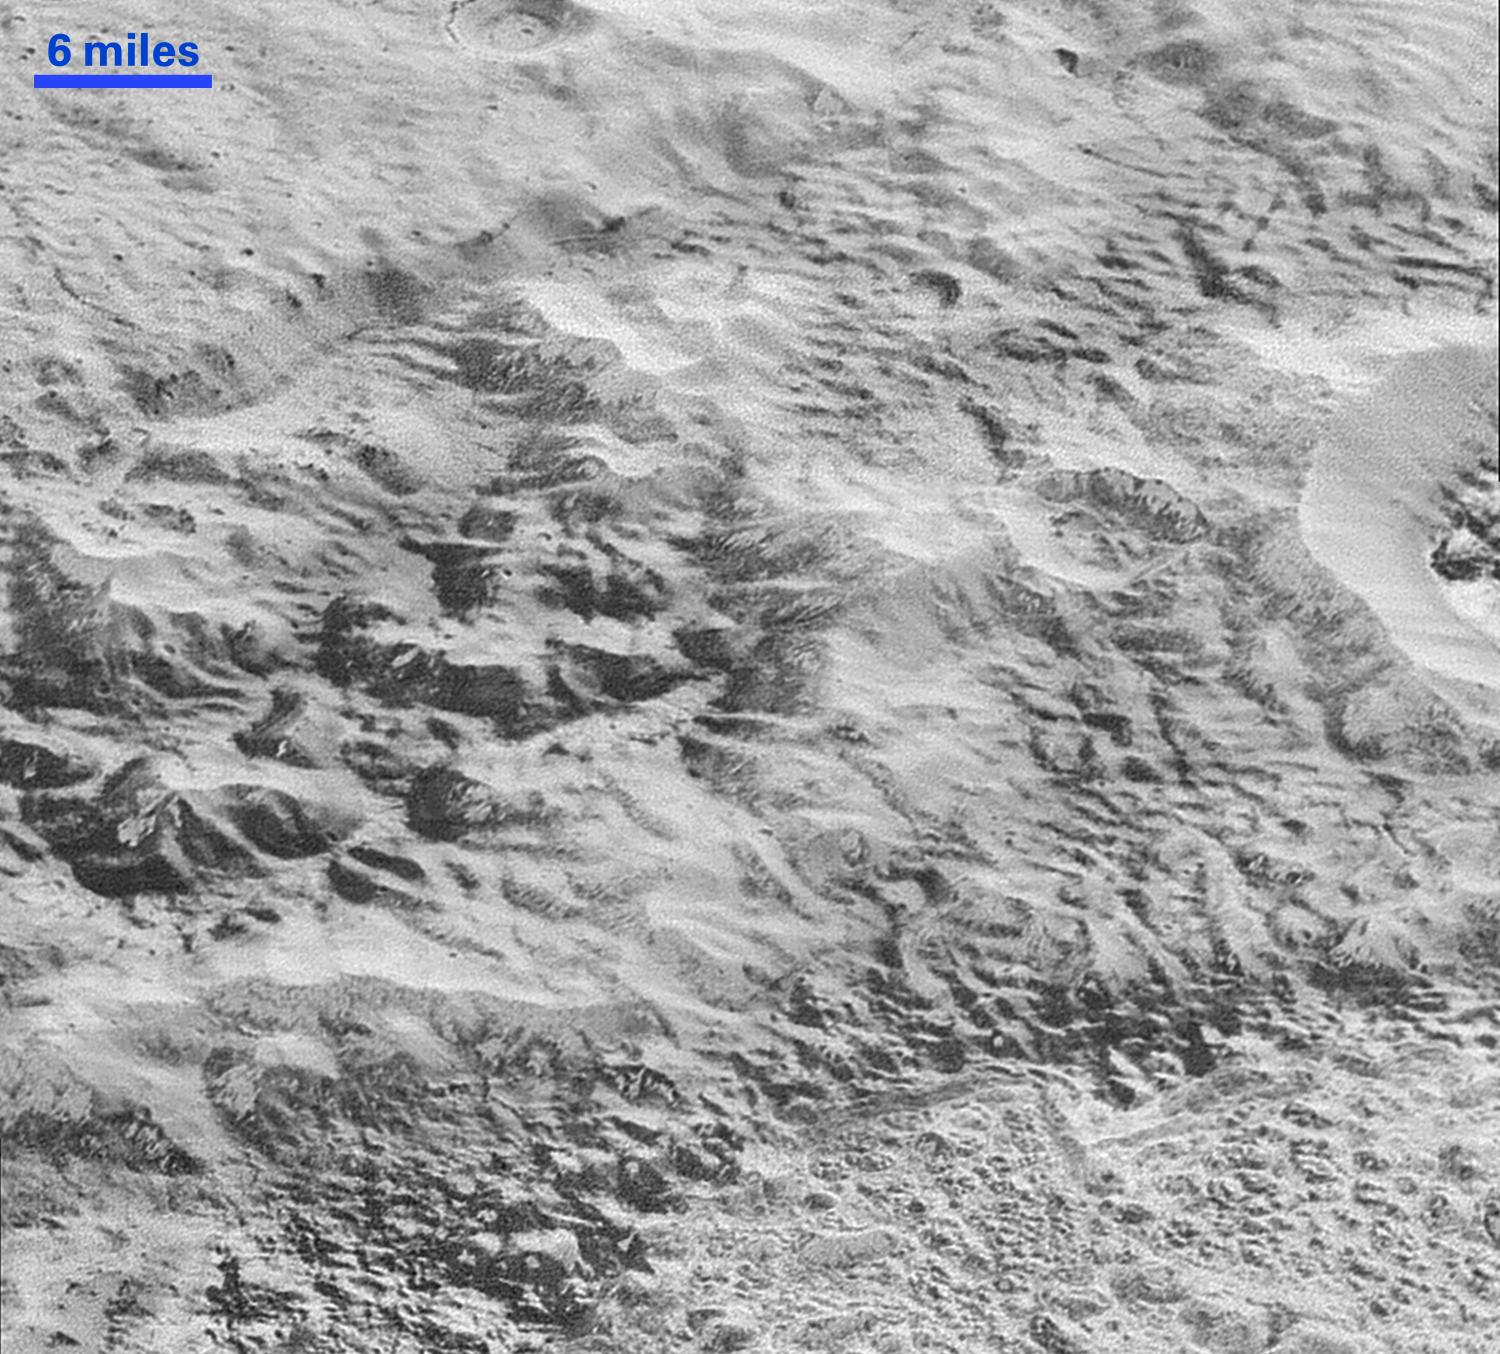 New Horizons Returns First Of The Best Images Of Pluto